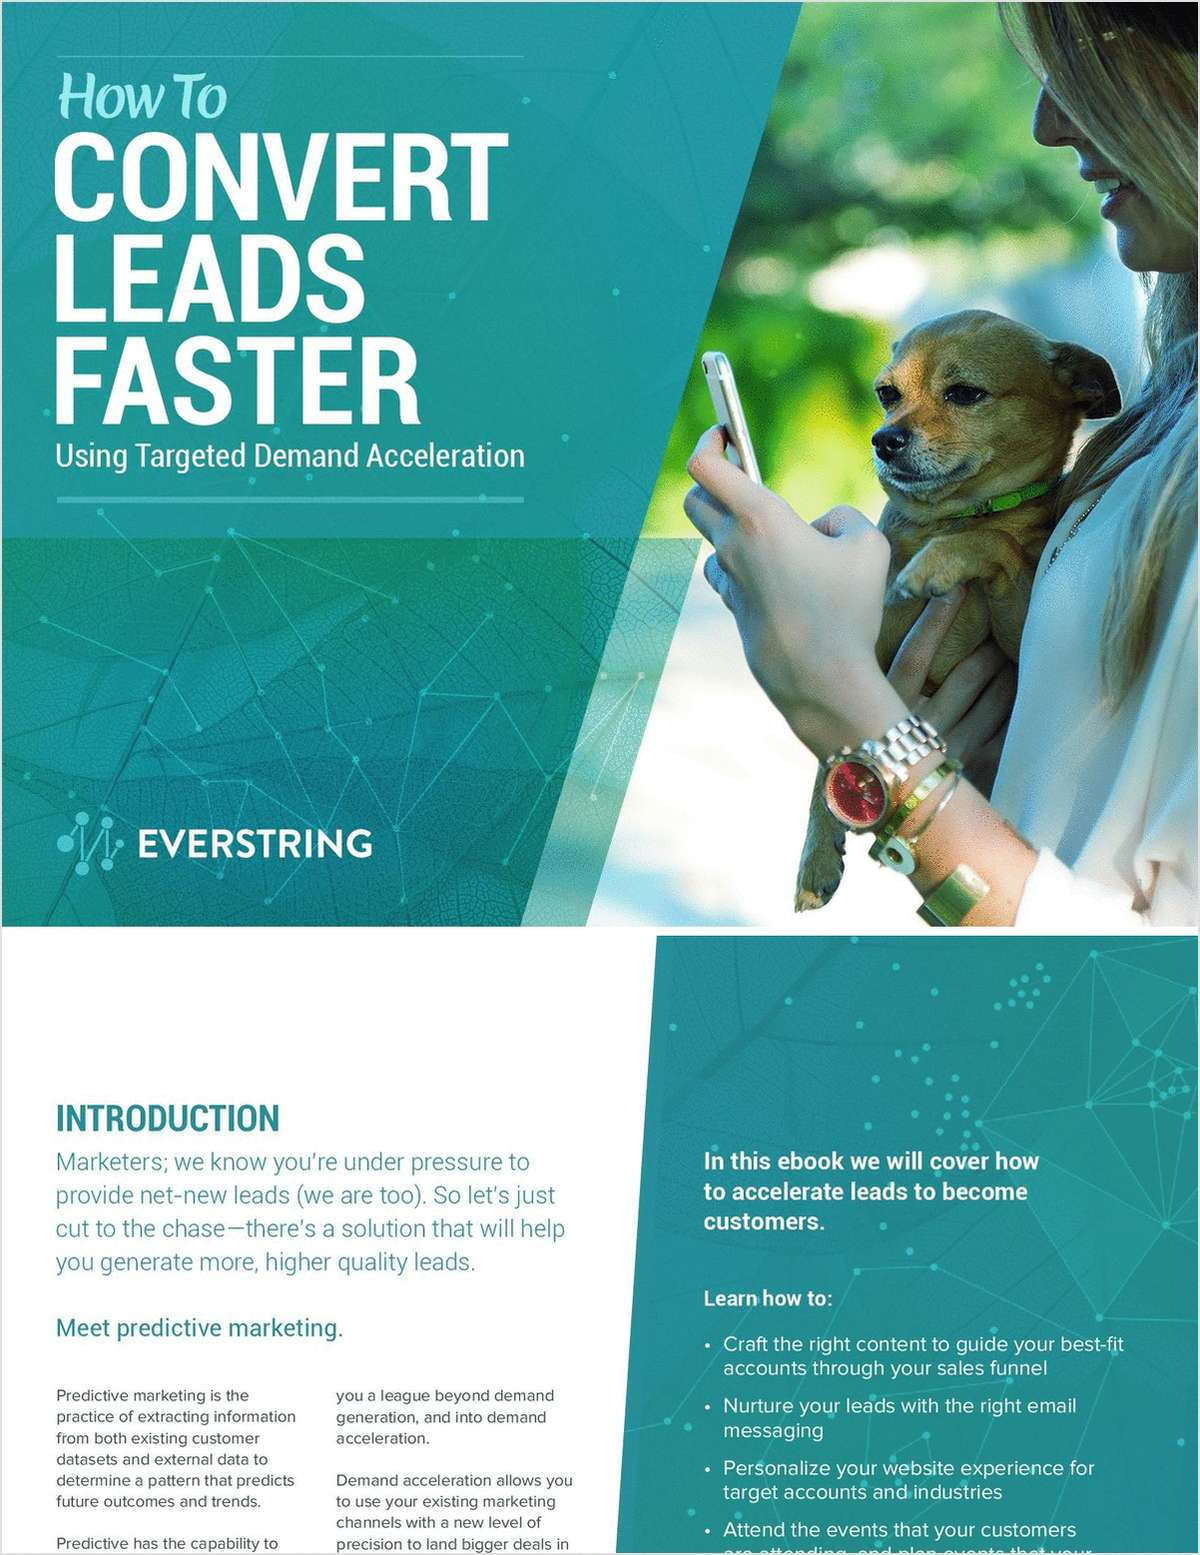 How to Convert Leads Faster Using Targeted Demand Acceleration